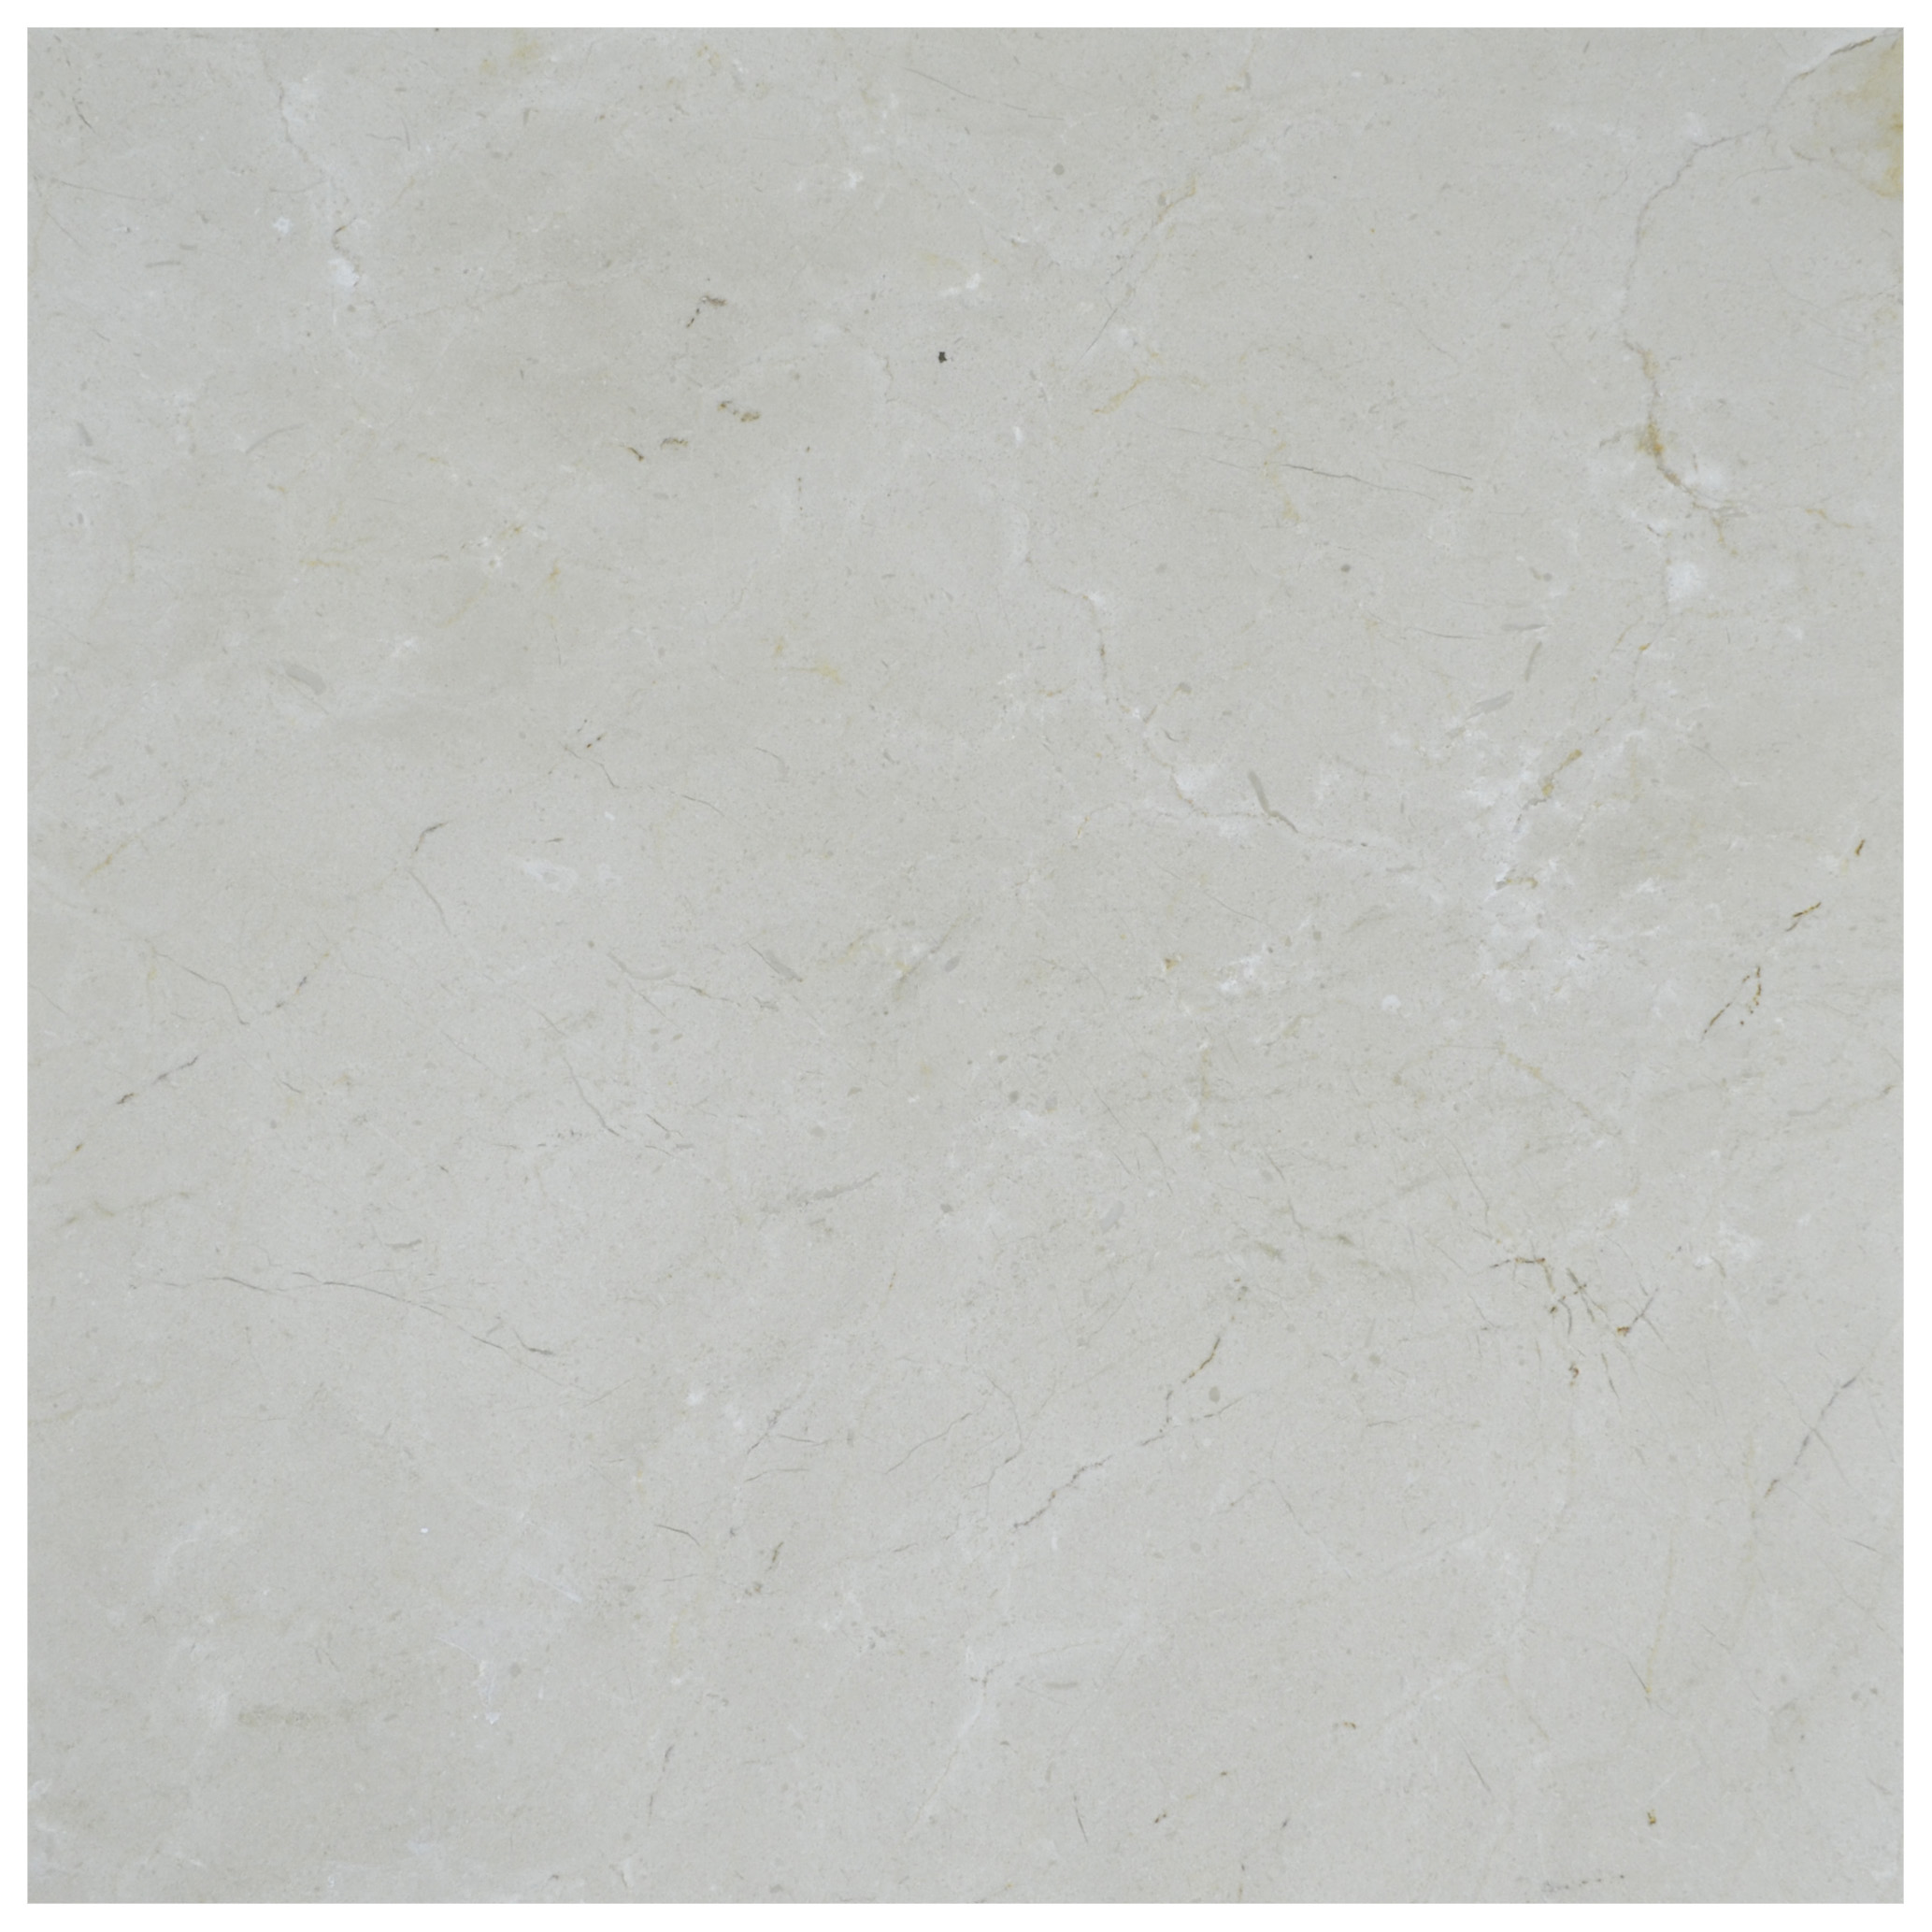 Cream Marfil Standard Polished Marble Tiles 24x24-marble sale-Atlantic Stone Source